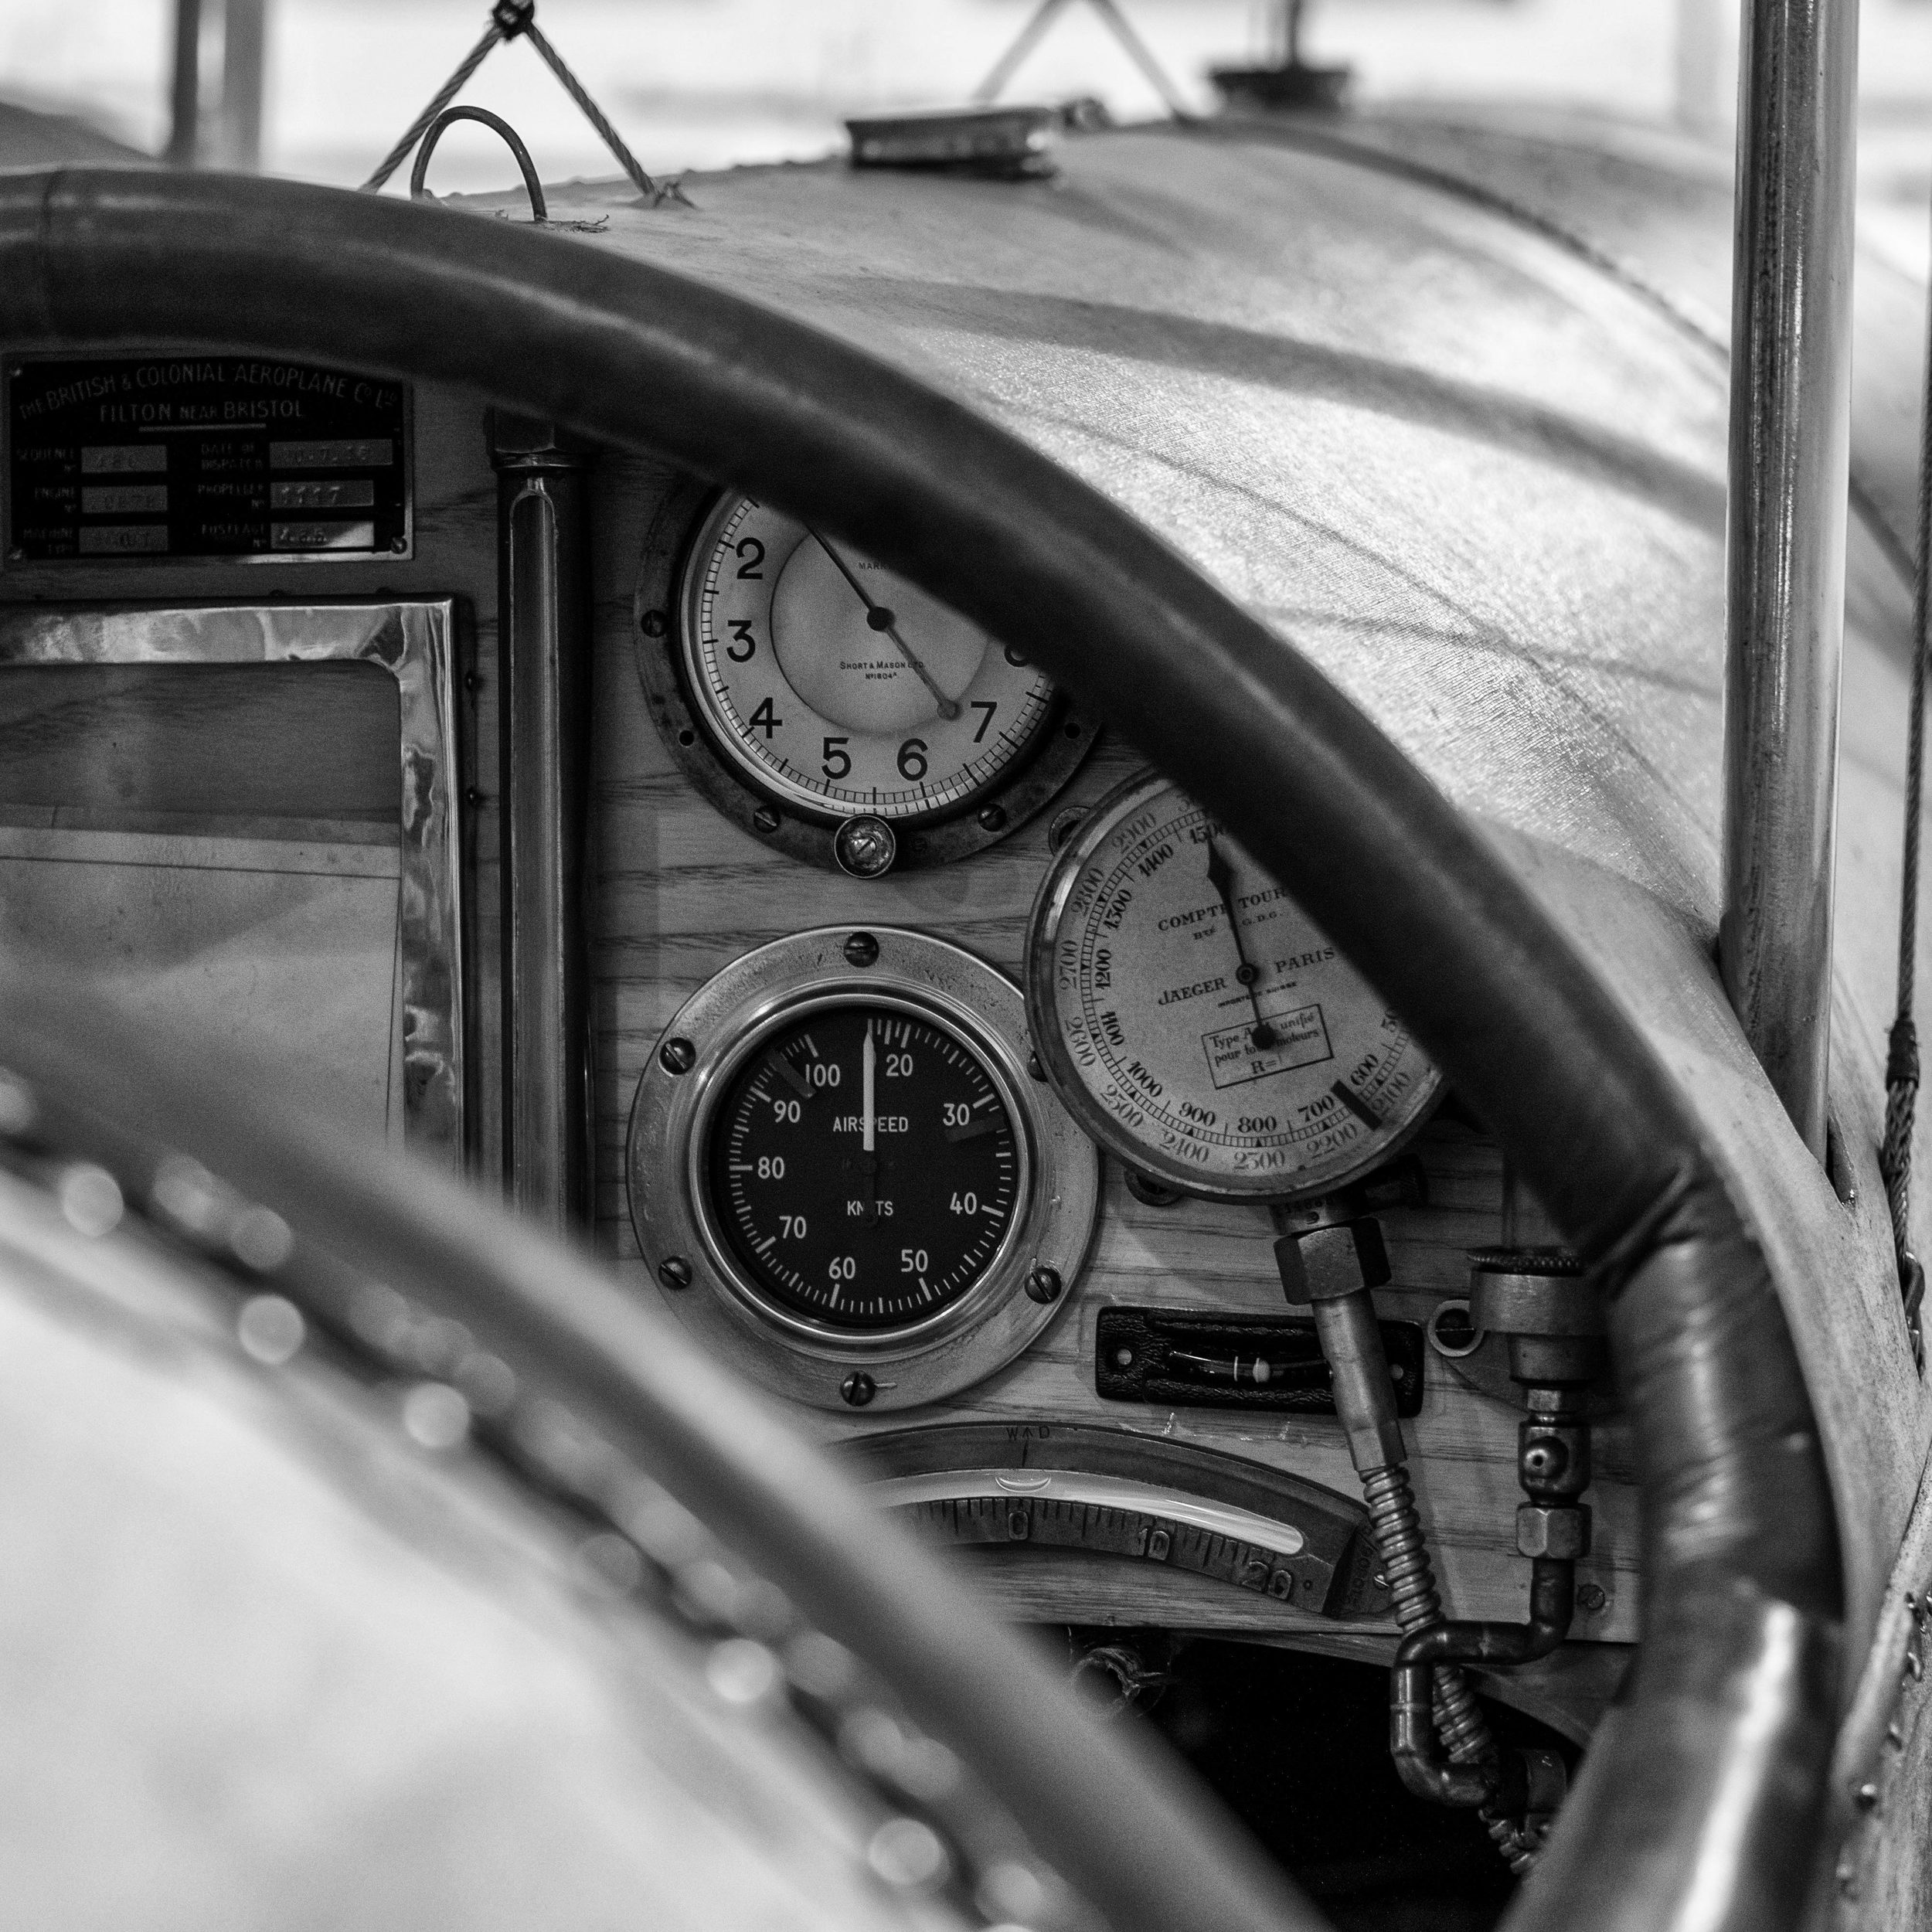 You want some bokeh? No problem, the SL can deliver. Paired with a 50mm Summilux f/1.4 M mount lens. Photographed at the Shuttleworth Collection, Biggleswade, England.